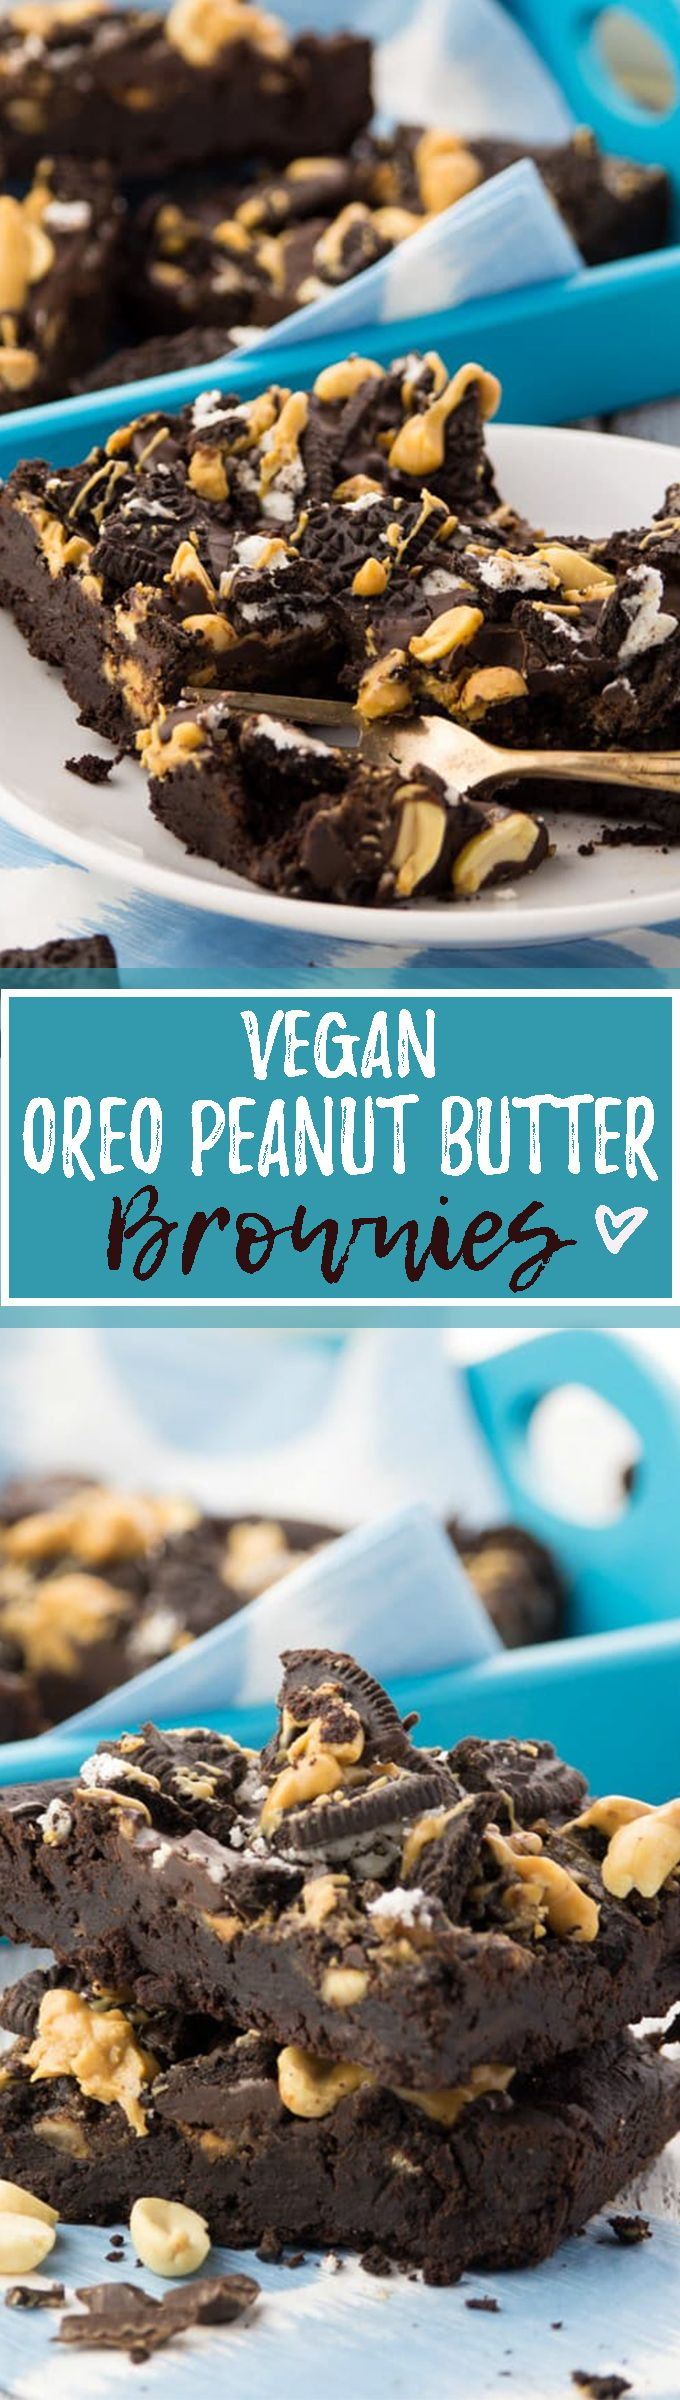 These vegan Oreo peanut butter brownies are super chocolatey, fudgy, and incredibly delicious! Welcome to chocolate heaven! <3   veganheaven.org